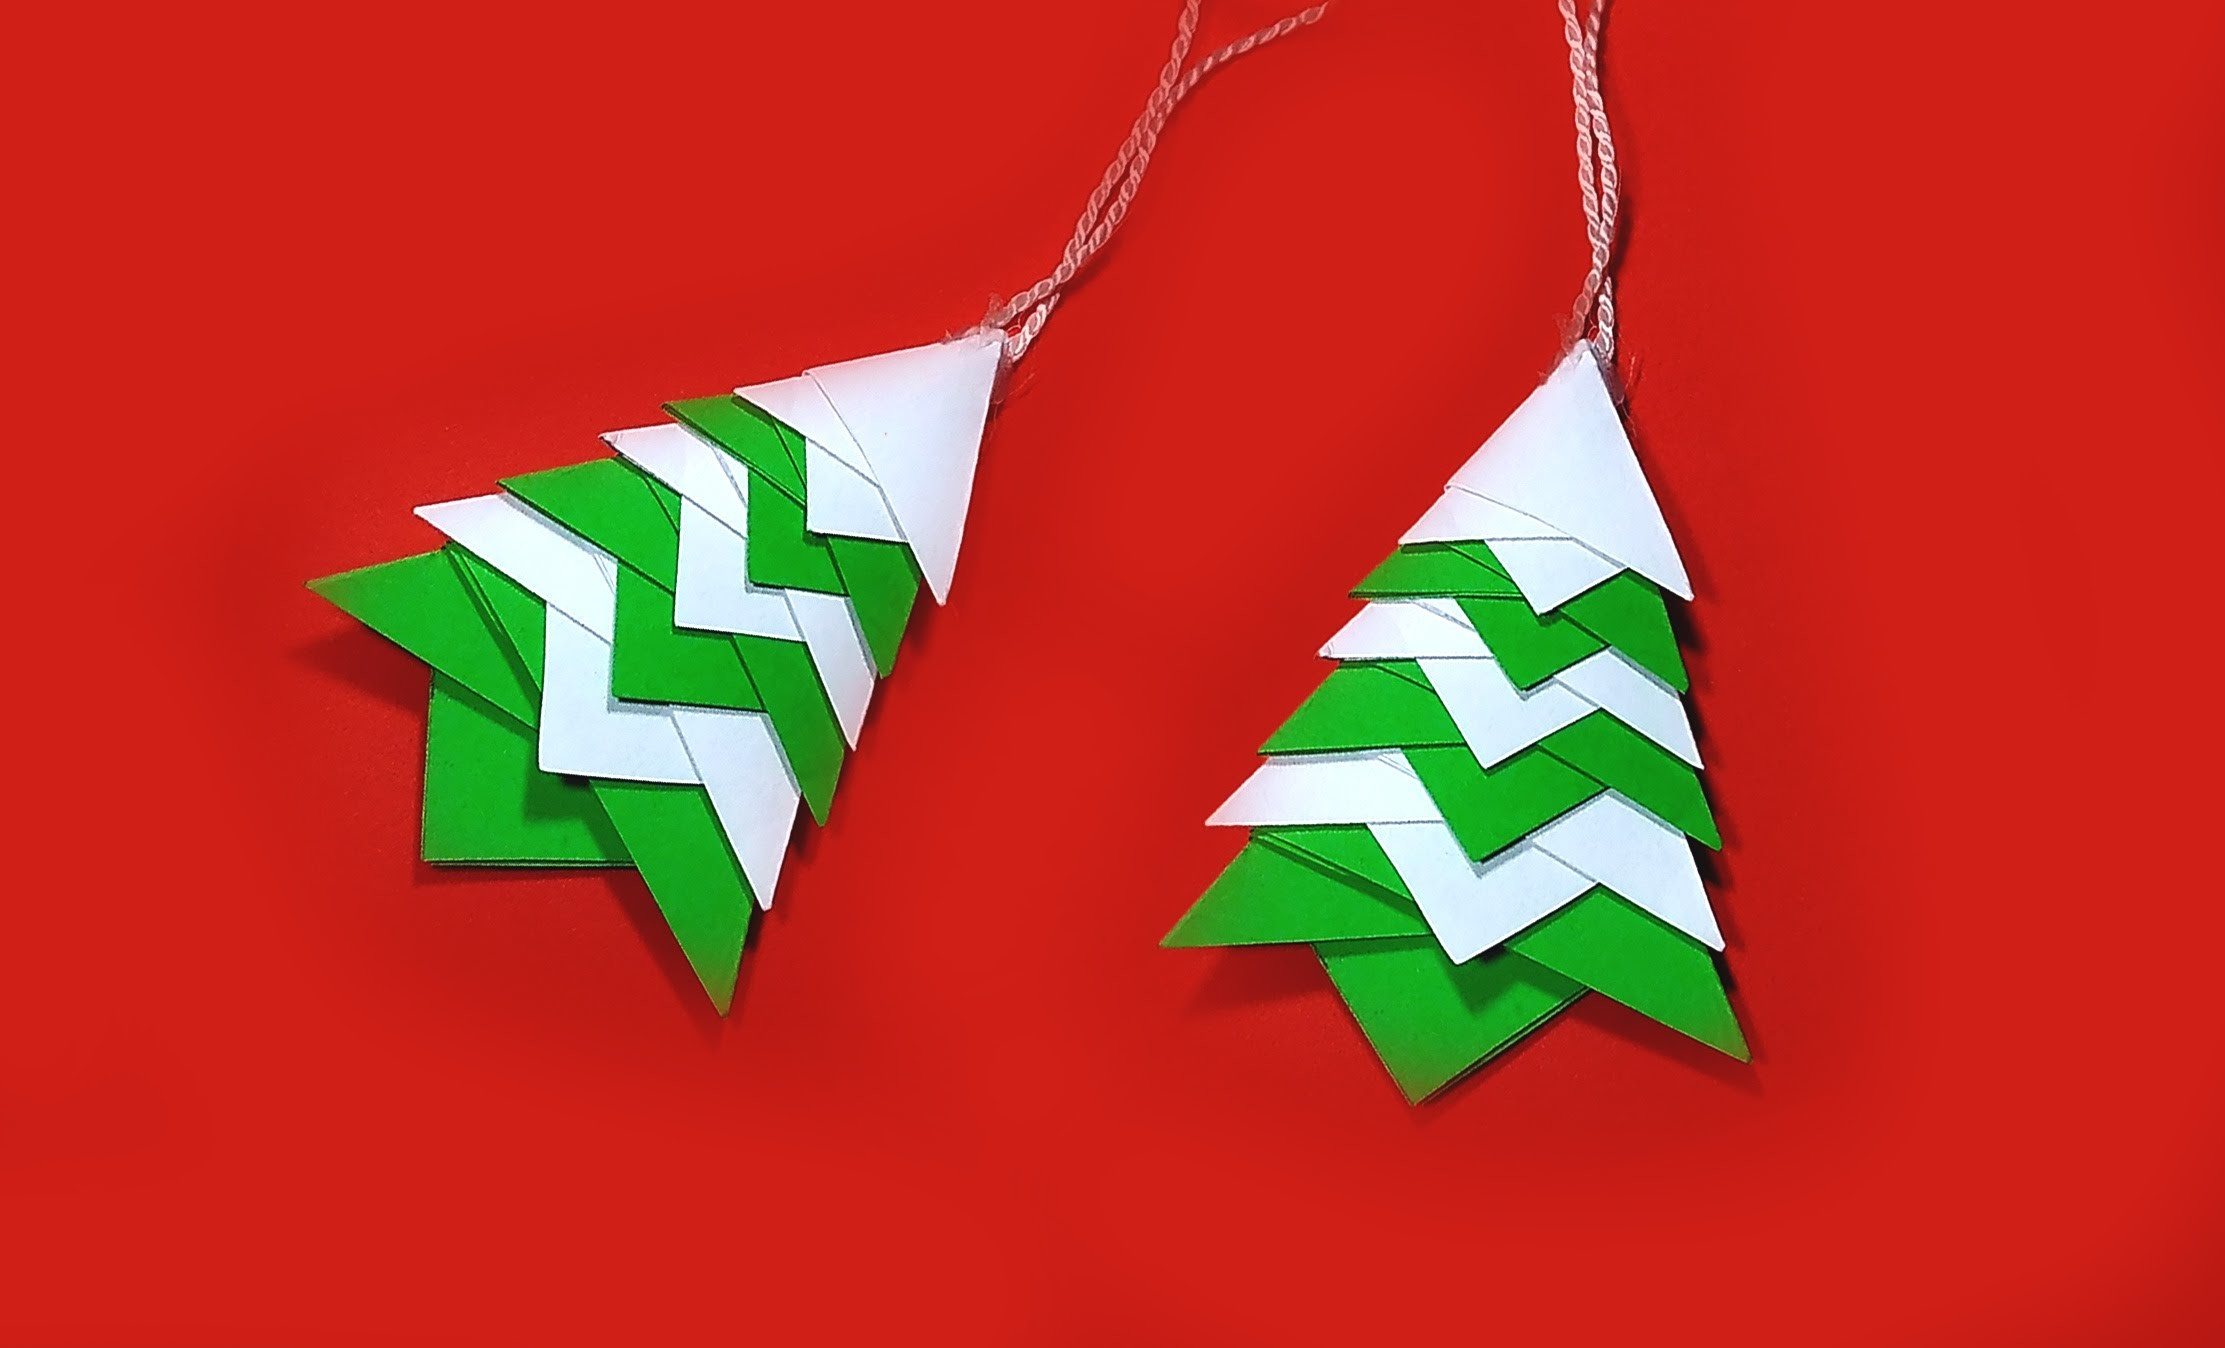 Quick origami Christmas tree! Great ideas for Christmas decoration and ornaments